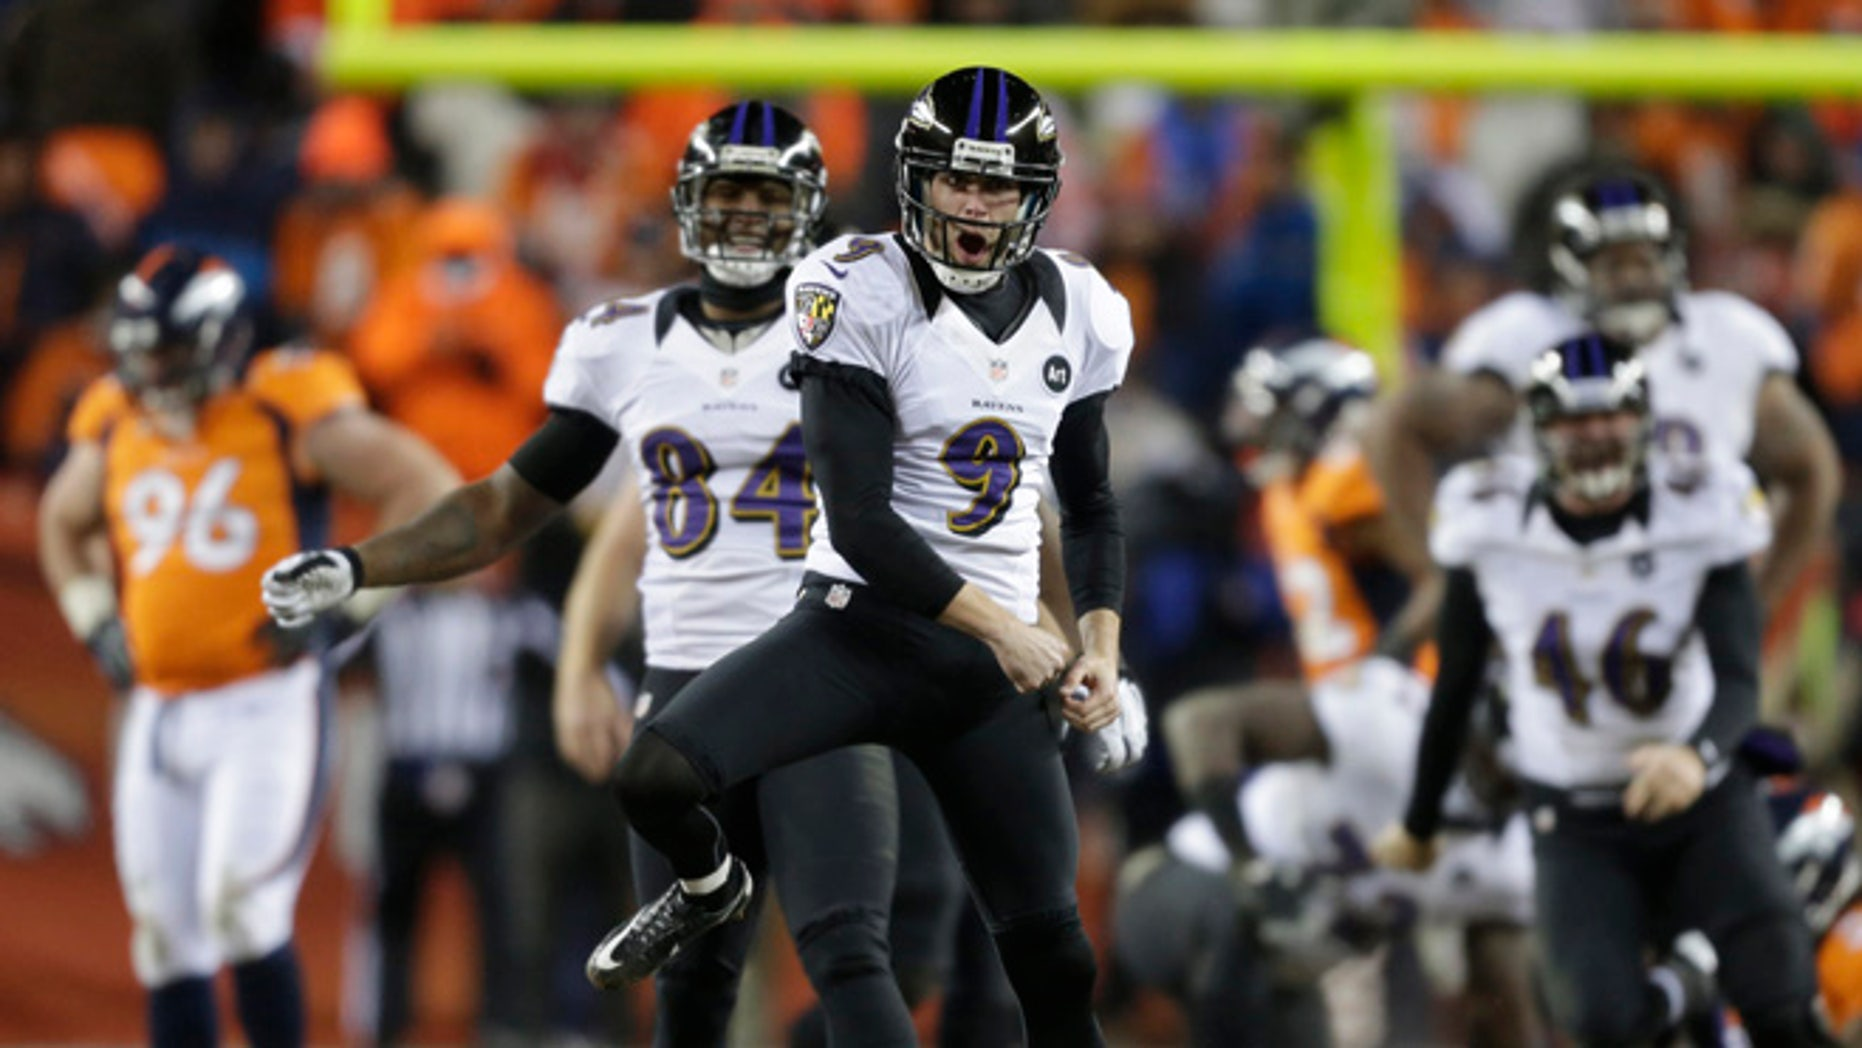 Jan. 12, 2013: Baltimore Ravens kicker Justin Tucker (9) reacts after hitting the winning field goal against the Denver Broncos in overtime of an AFC divisional playoff NFL football game in Denver.